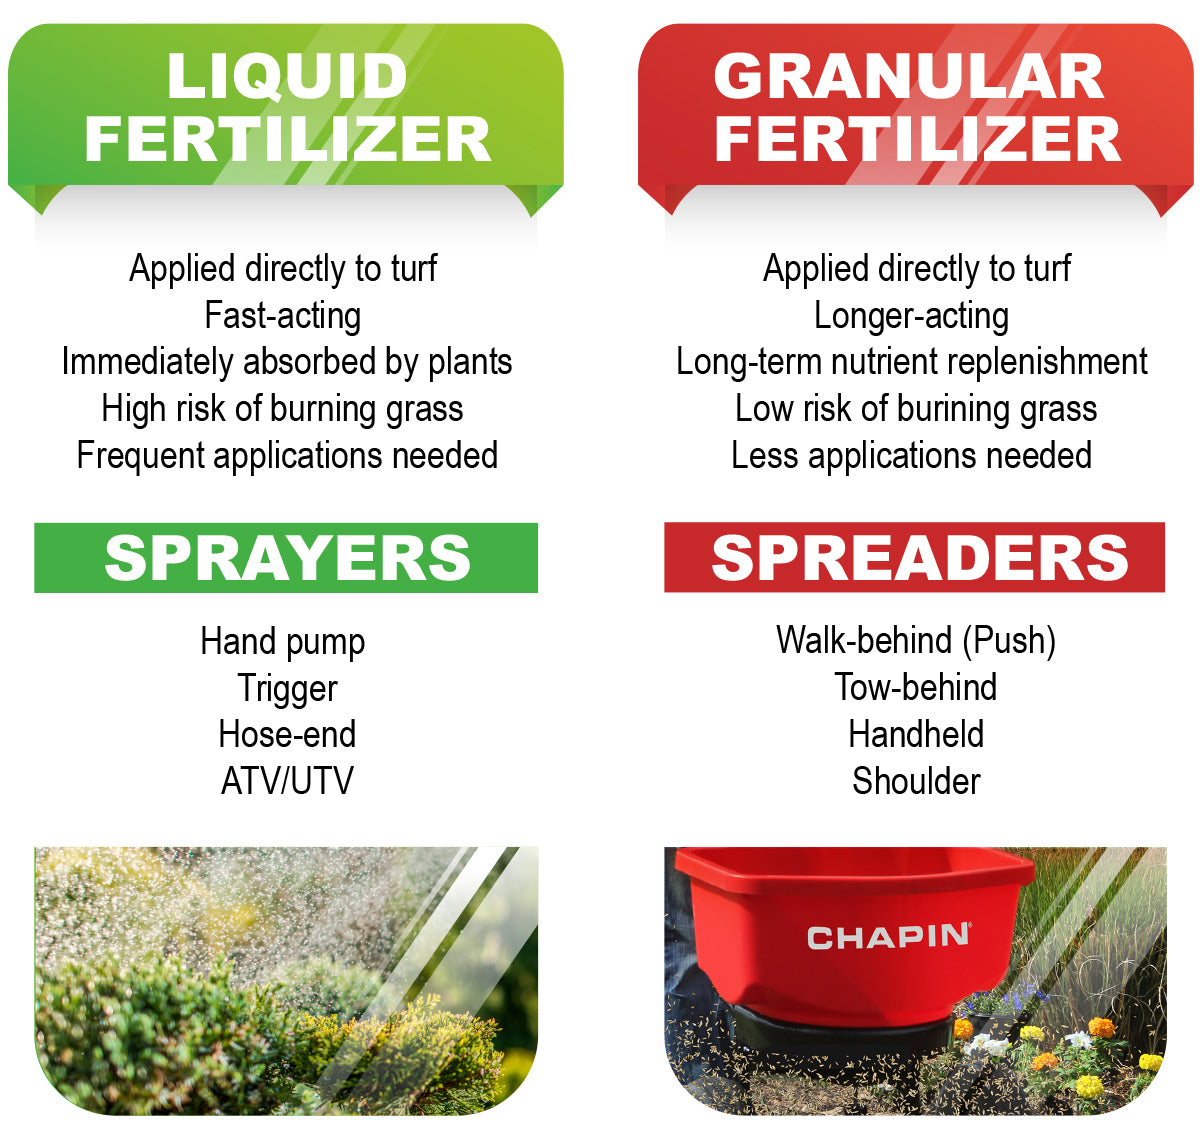 Liquid versus granular fertilizer chart